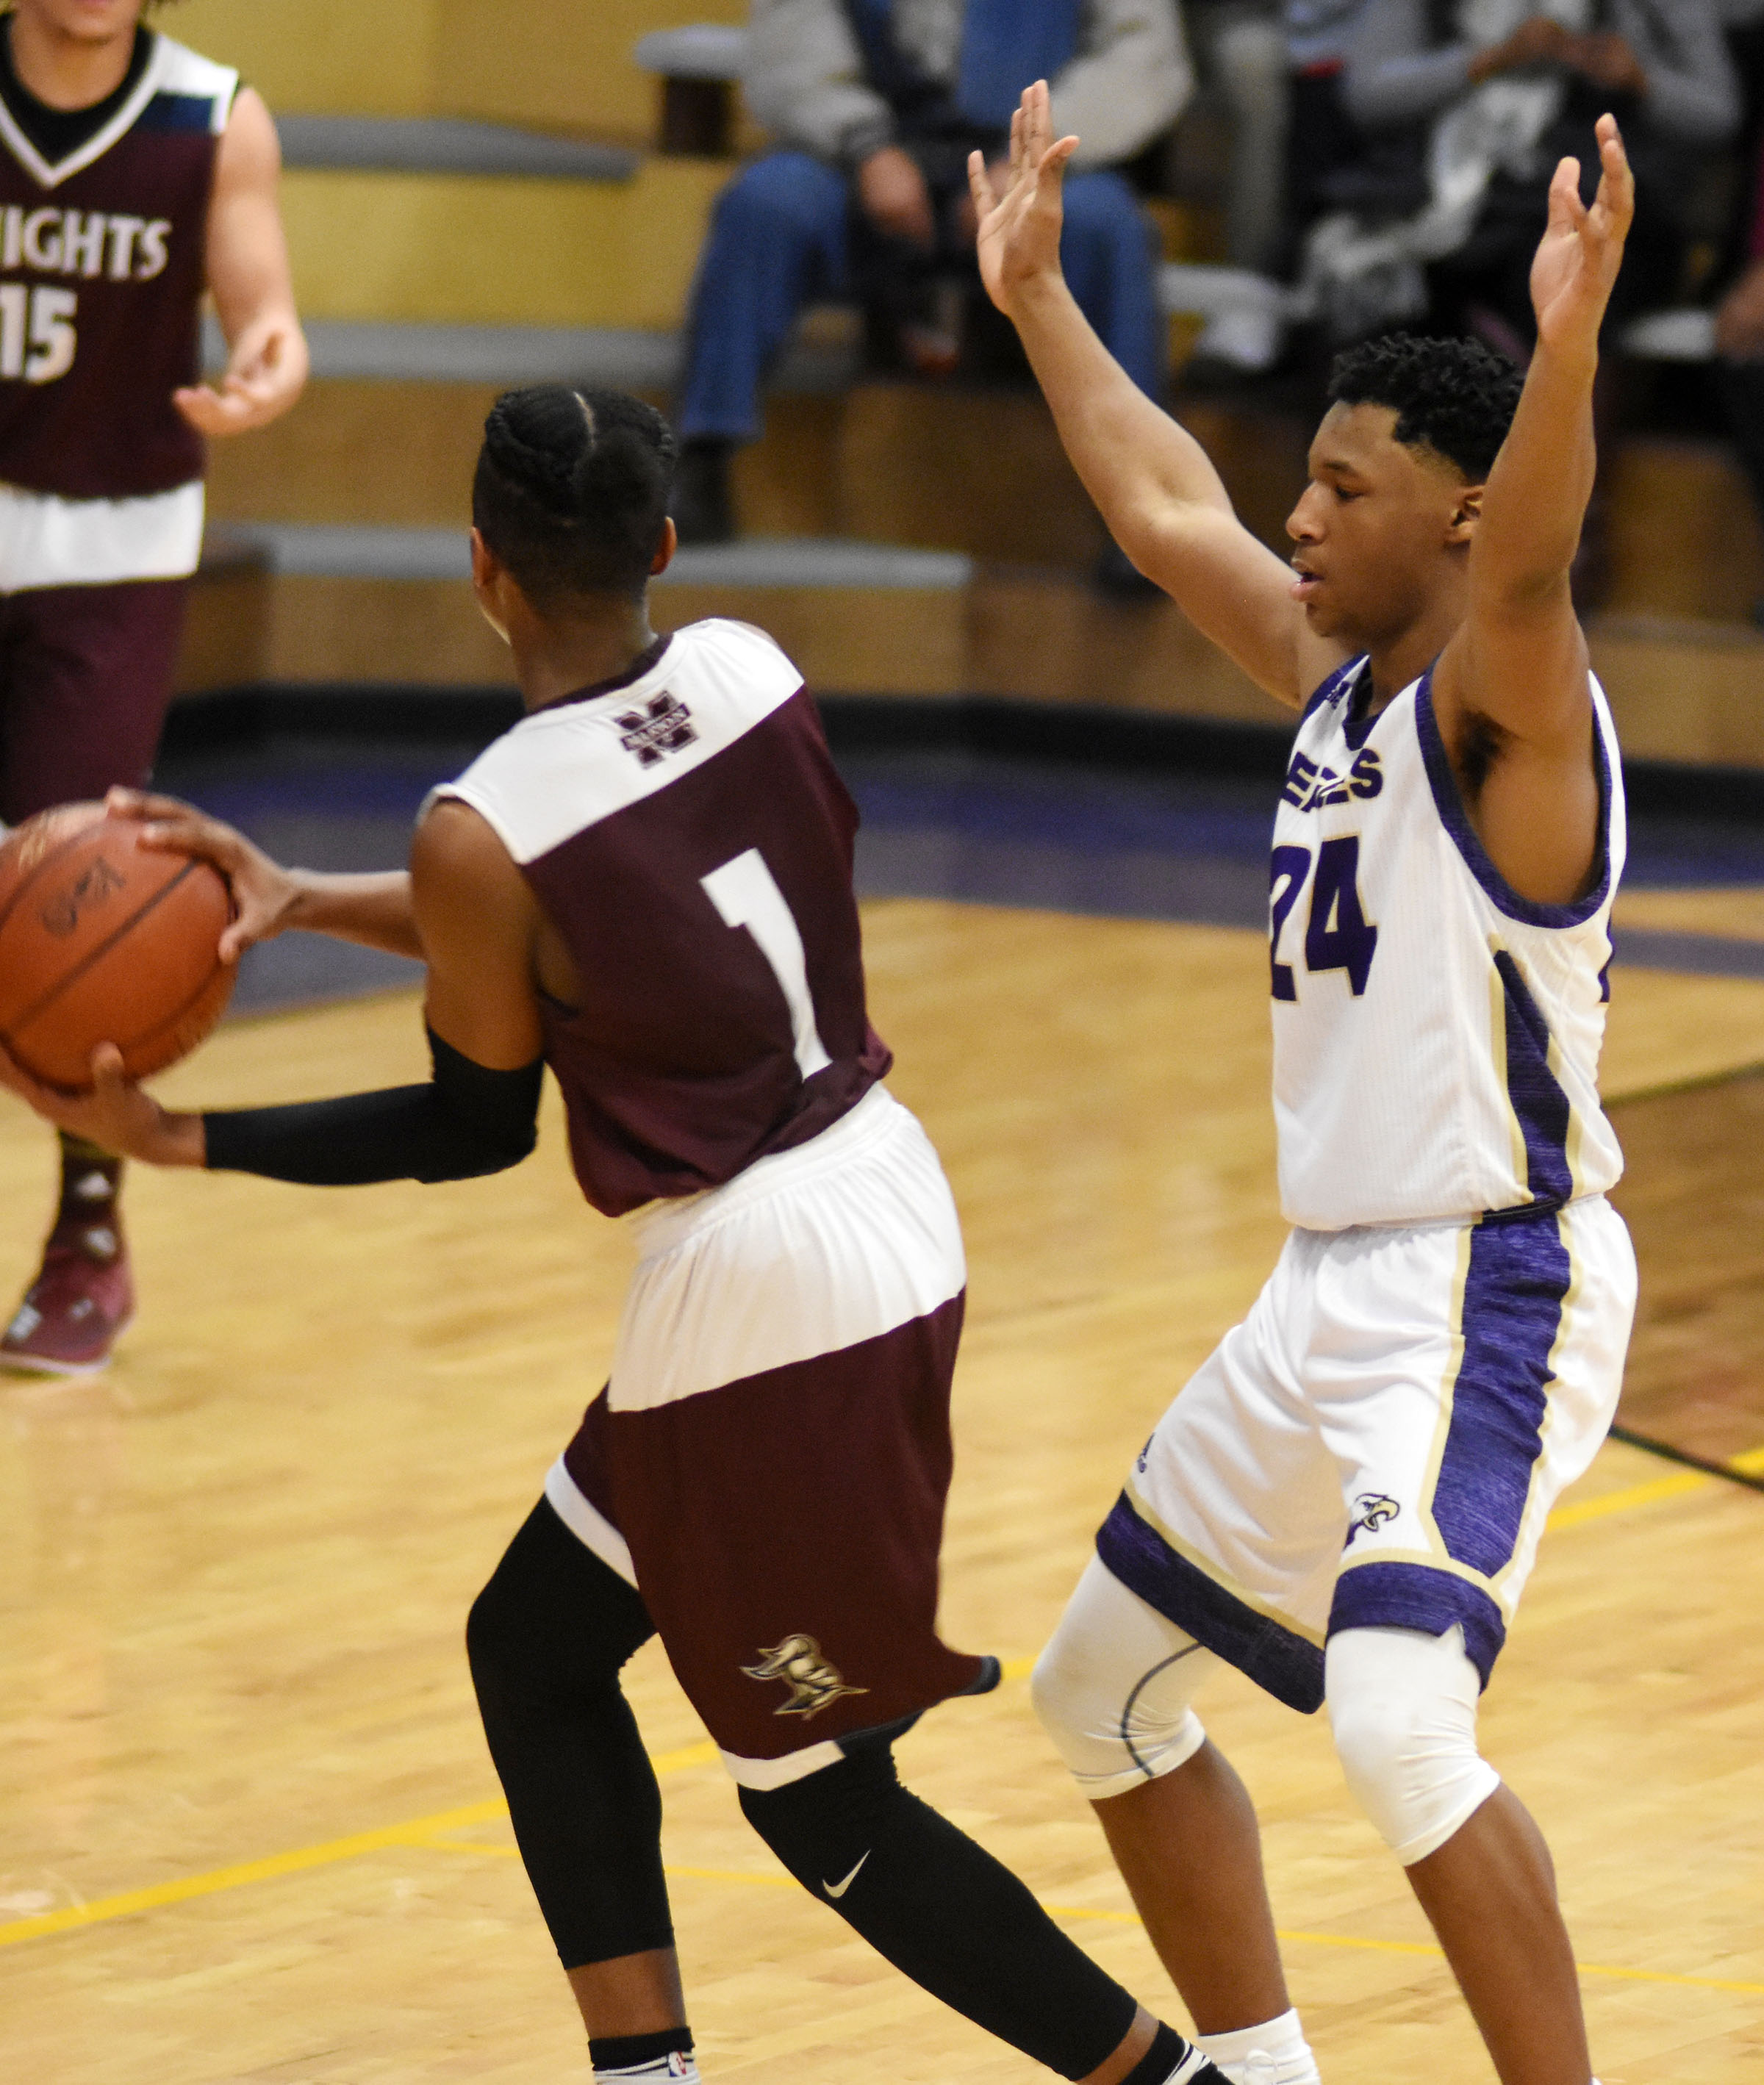 CHS junior Taj Sanders plays defense.